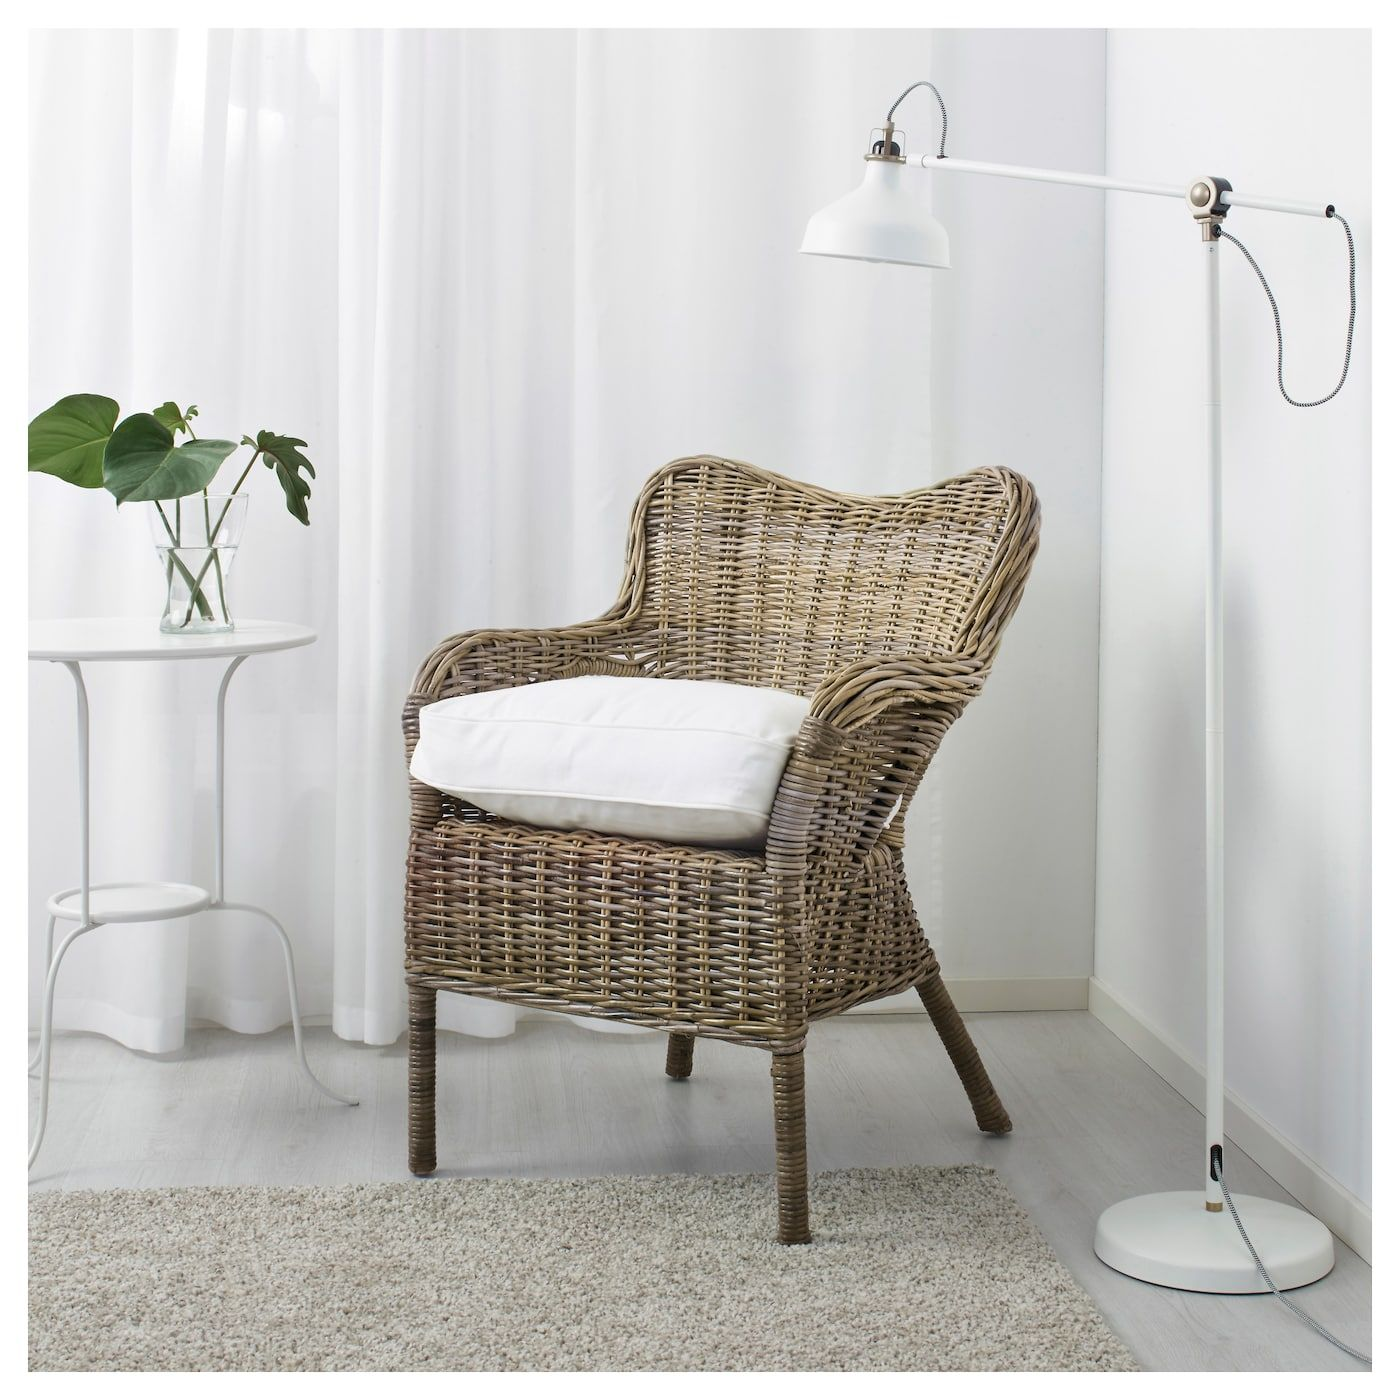 IKEA BYHOLMA Armchair gray, white Grey armchair, Ikea